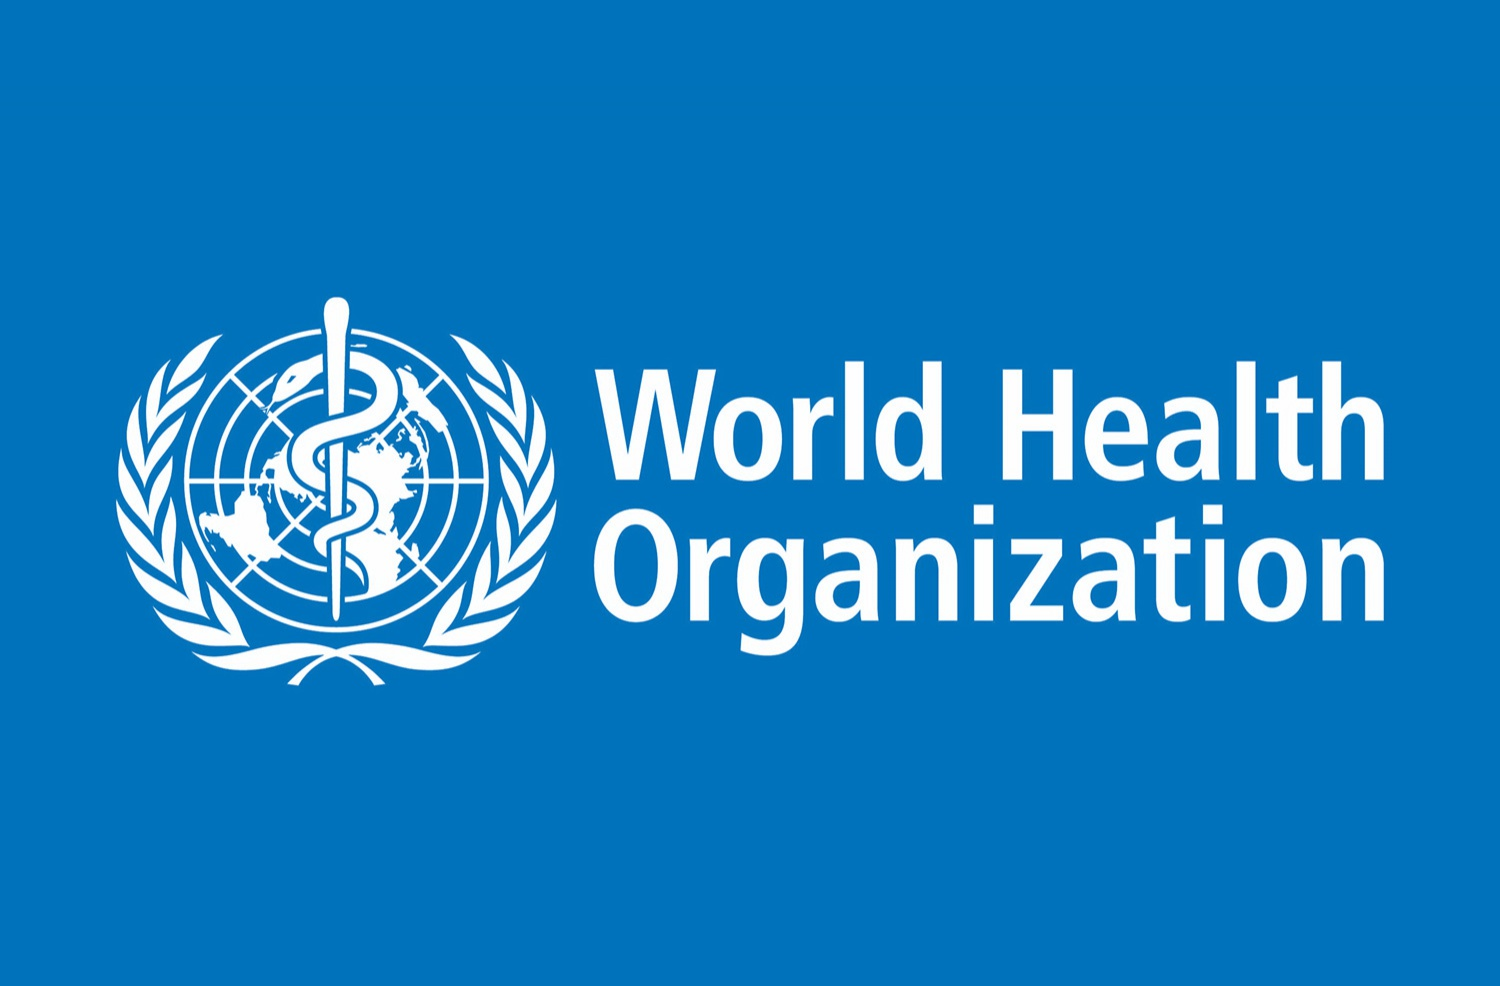 4.1. World Health Organization (WHO) guidelines